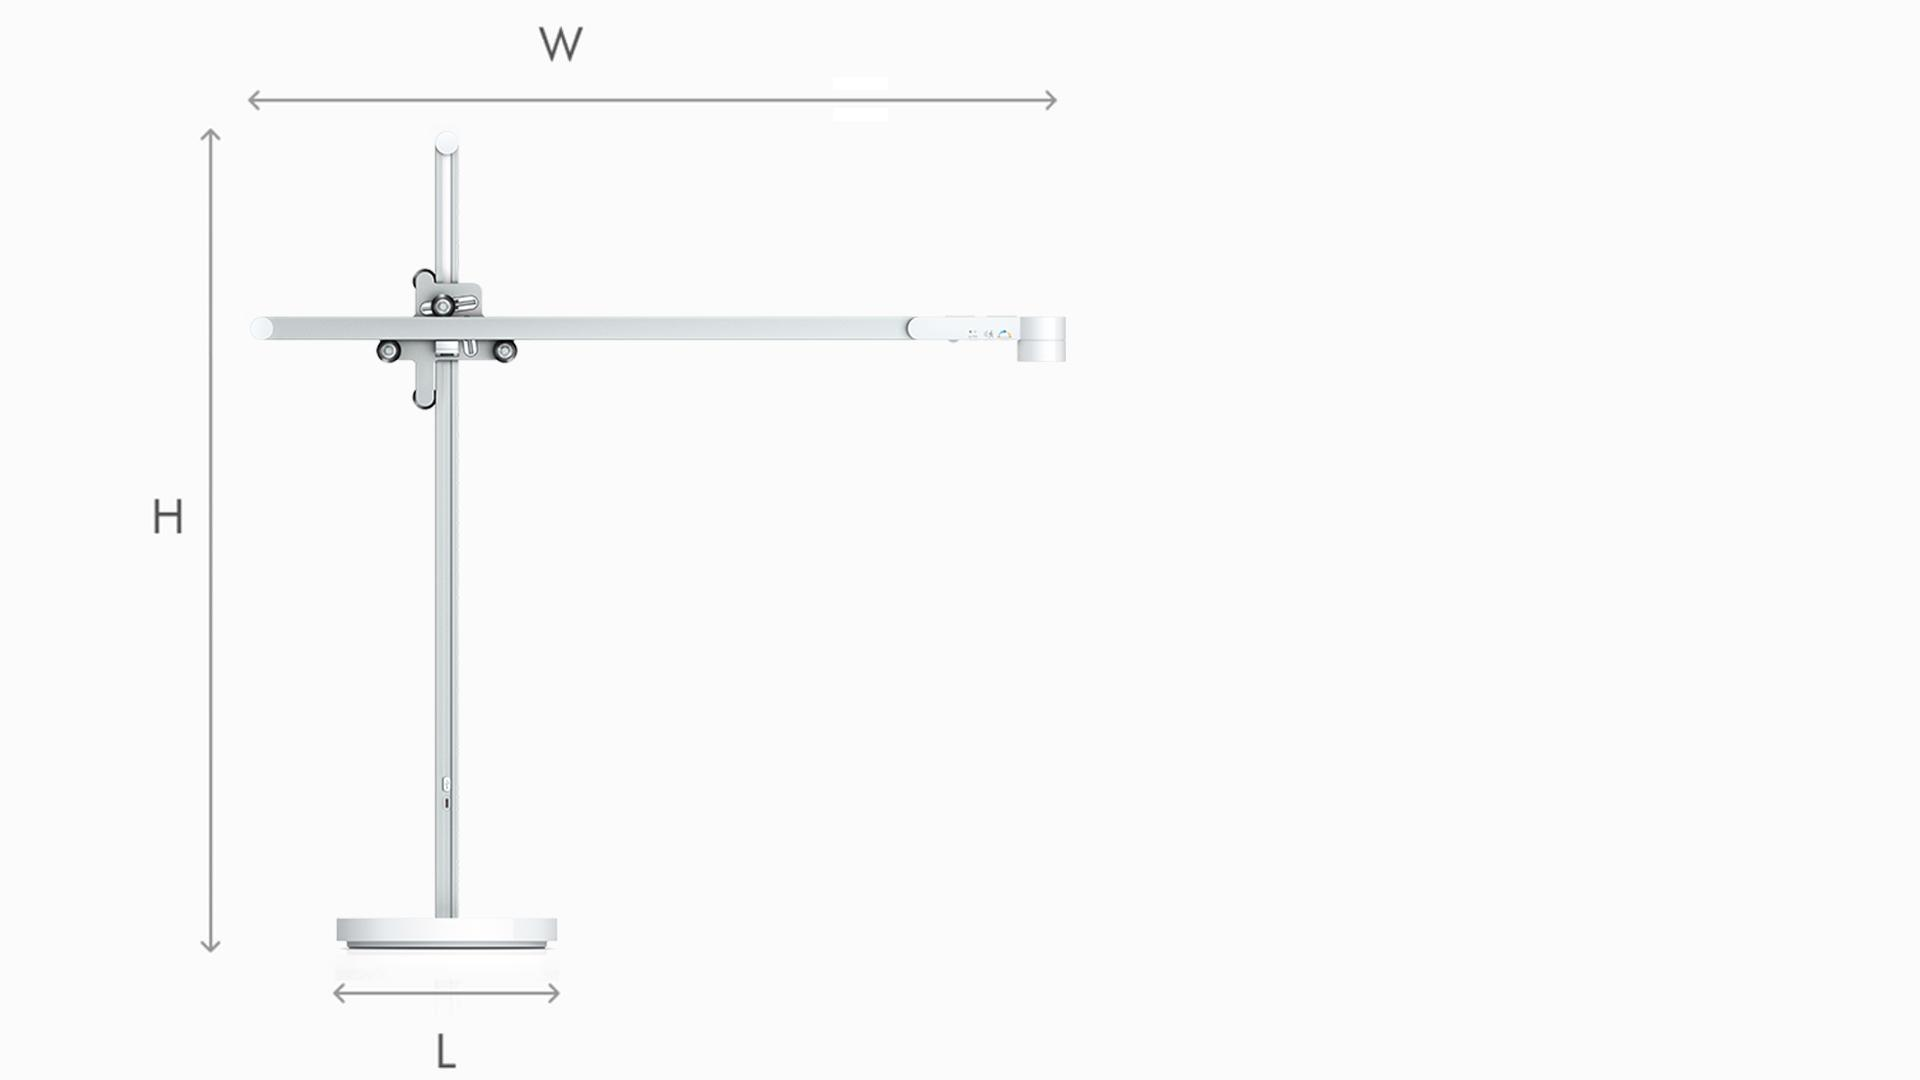 Illustration of Dyson Lightcycle white task light dimensions